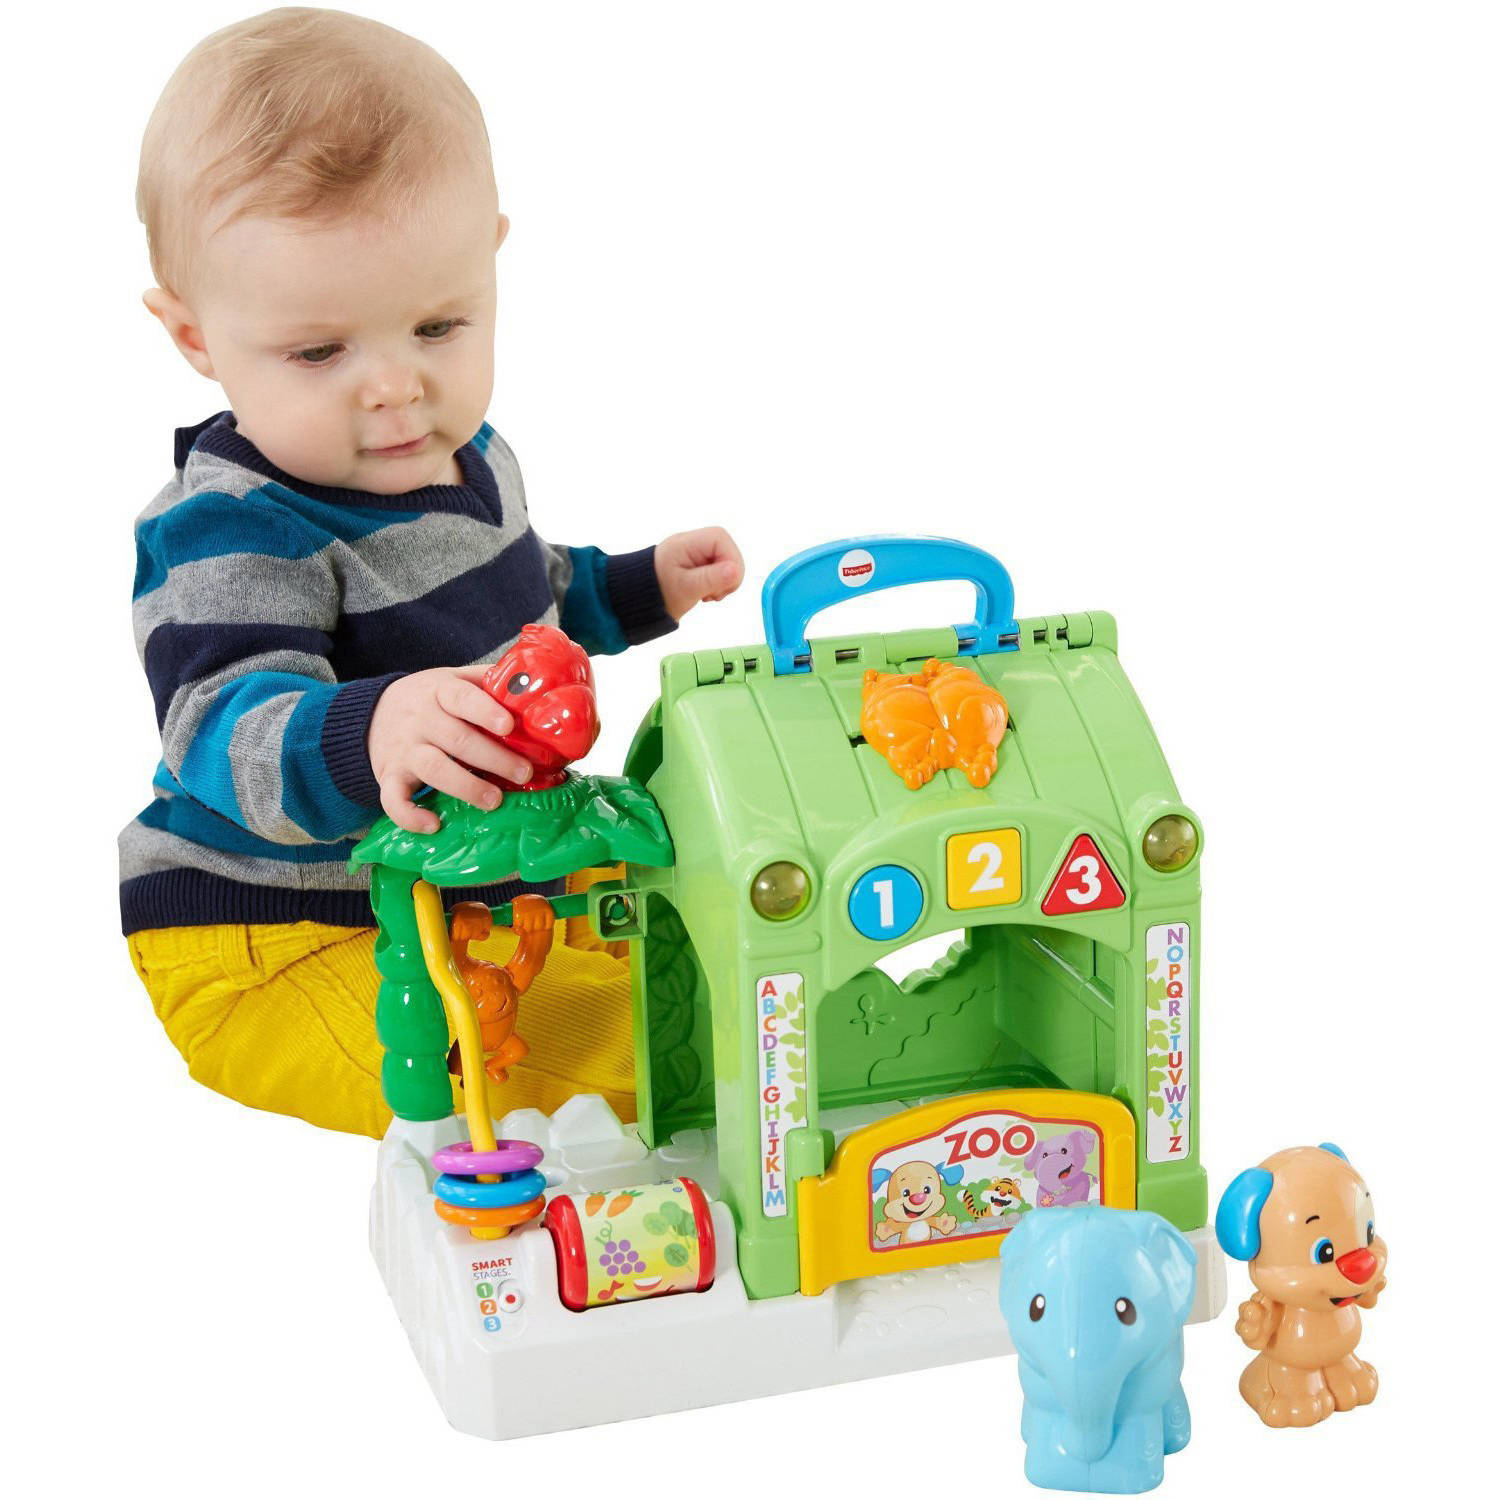 Fisher Price Laugh & Learn Smart Stages Activity Zoo Walmart